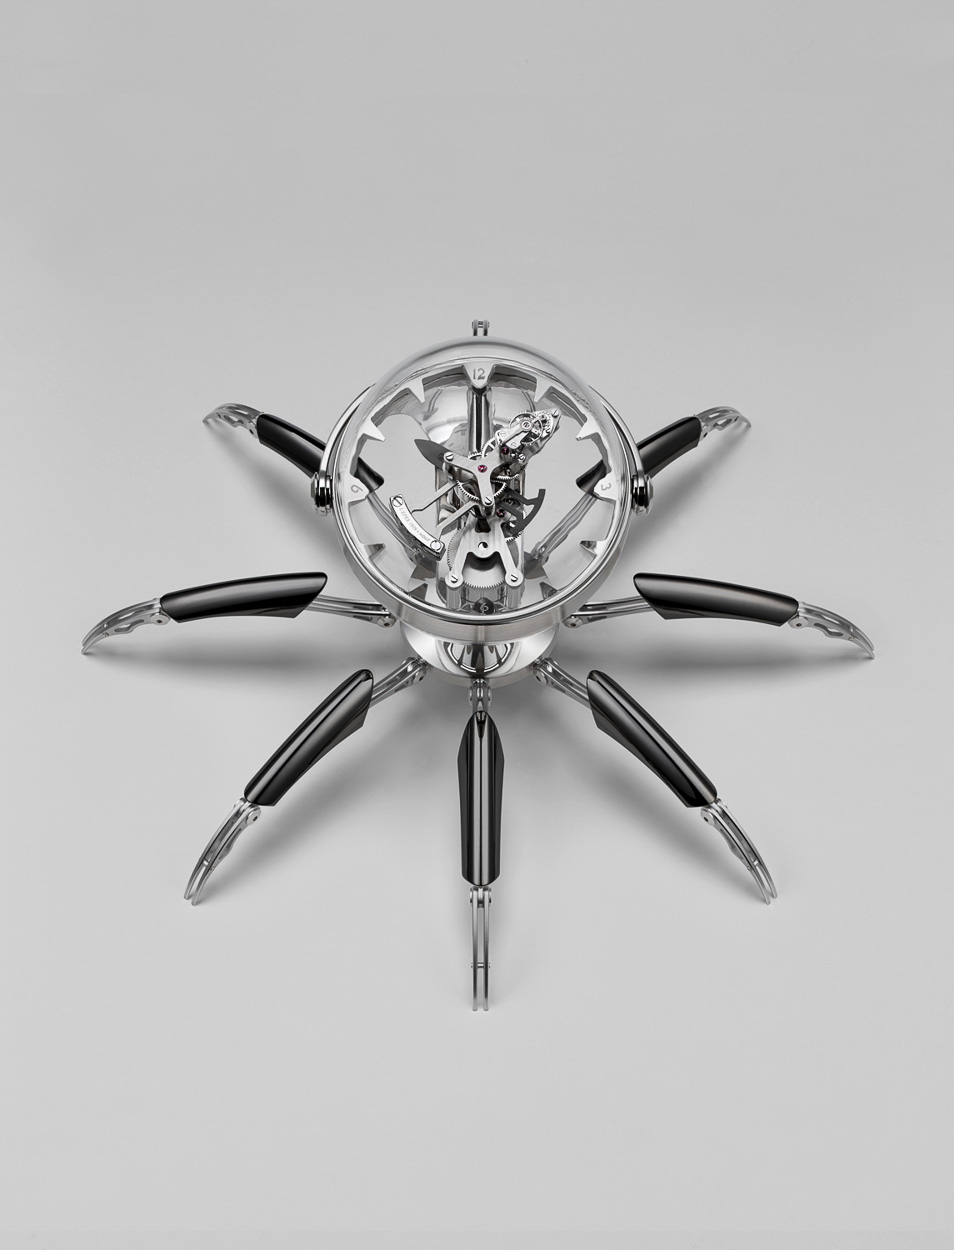 MB&F presents their latest creation the Octopod table clock